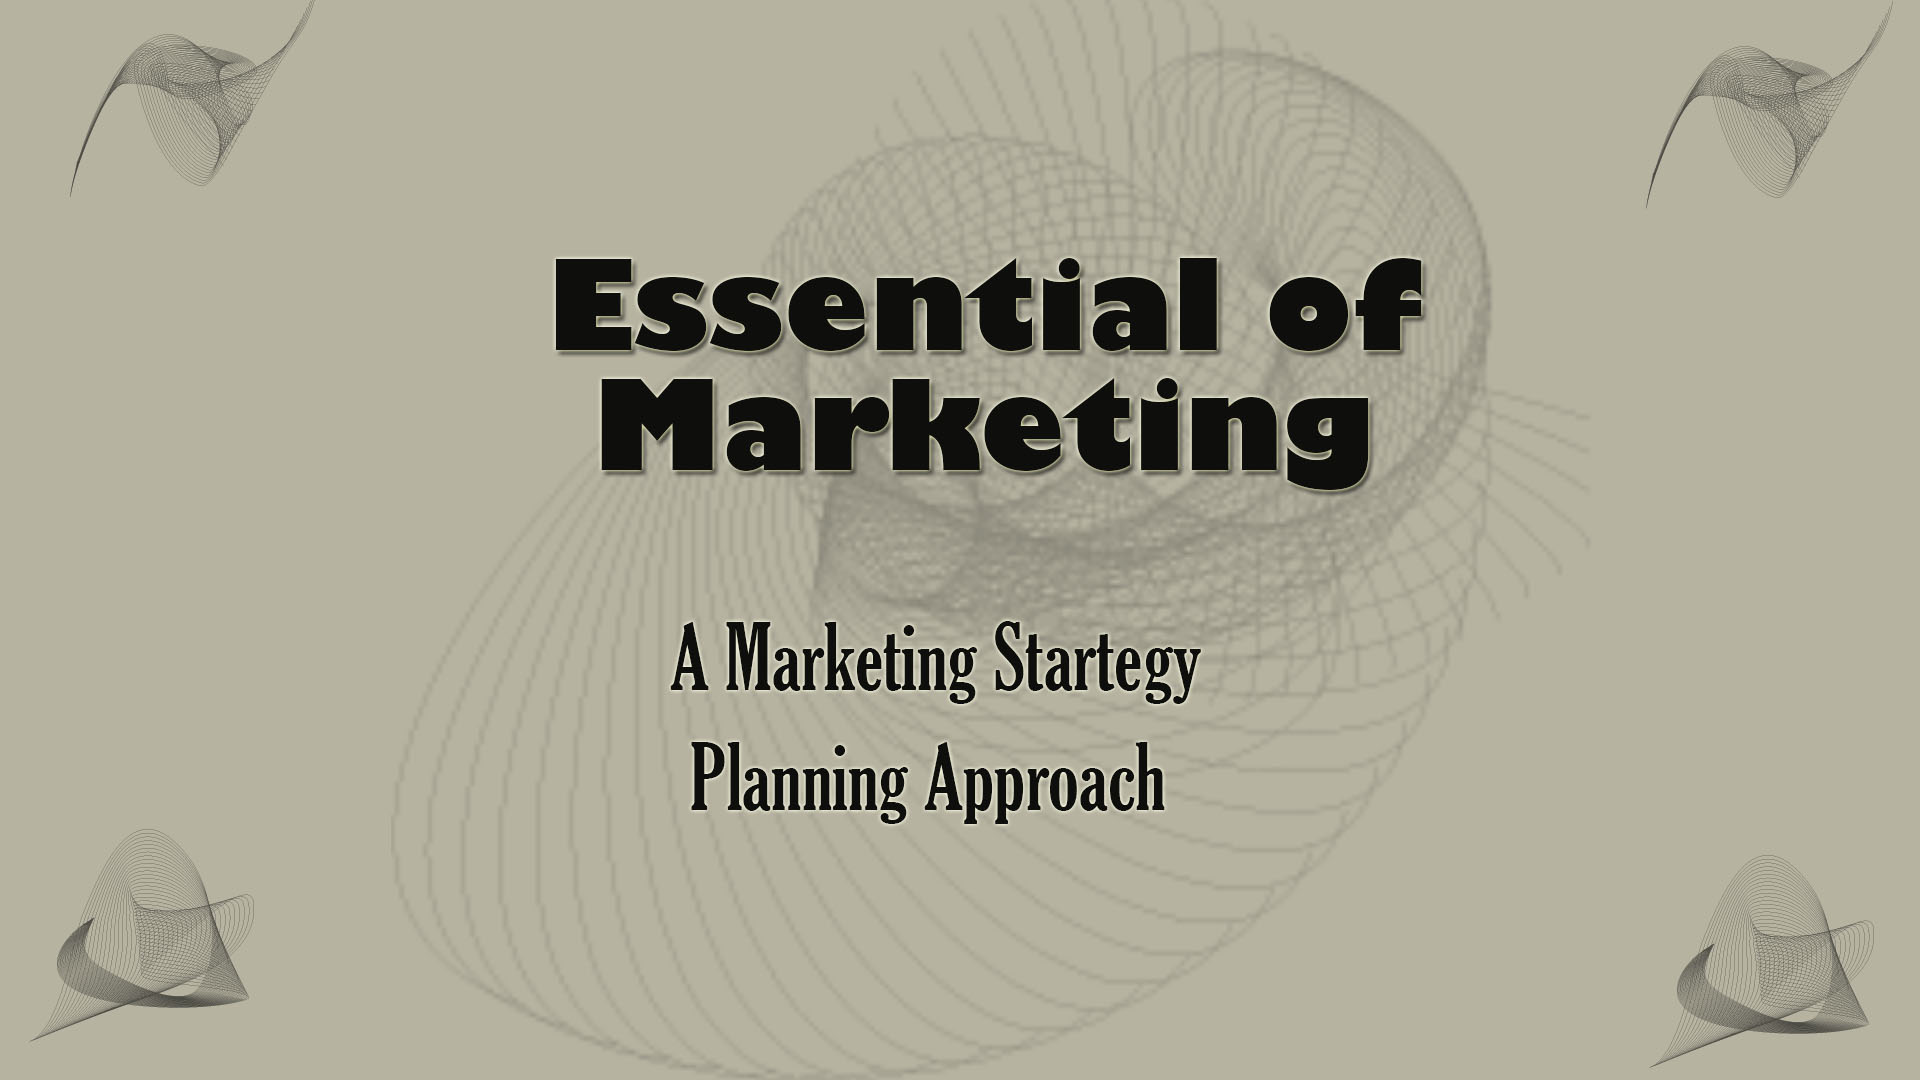 Essentials-of-Marketing-A-Marketing-Startegy-Planning-Approach